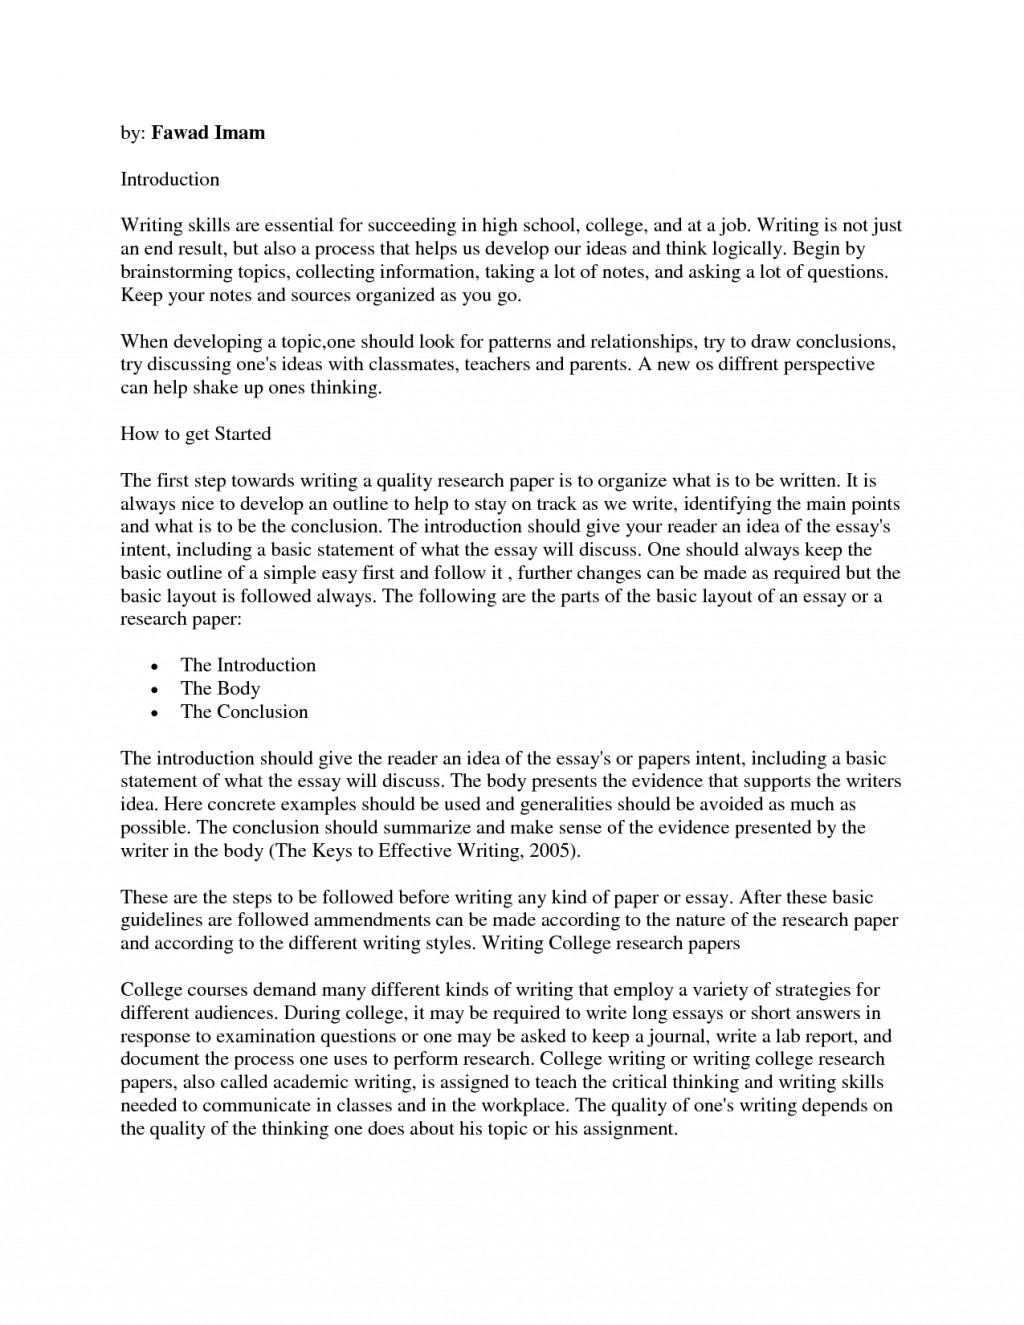 006 How To Write Research Papers Paper Outstanding A Proposal In Apa Format Sample History Thesis Large